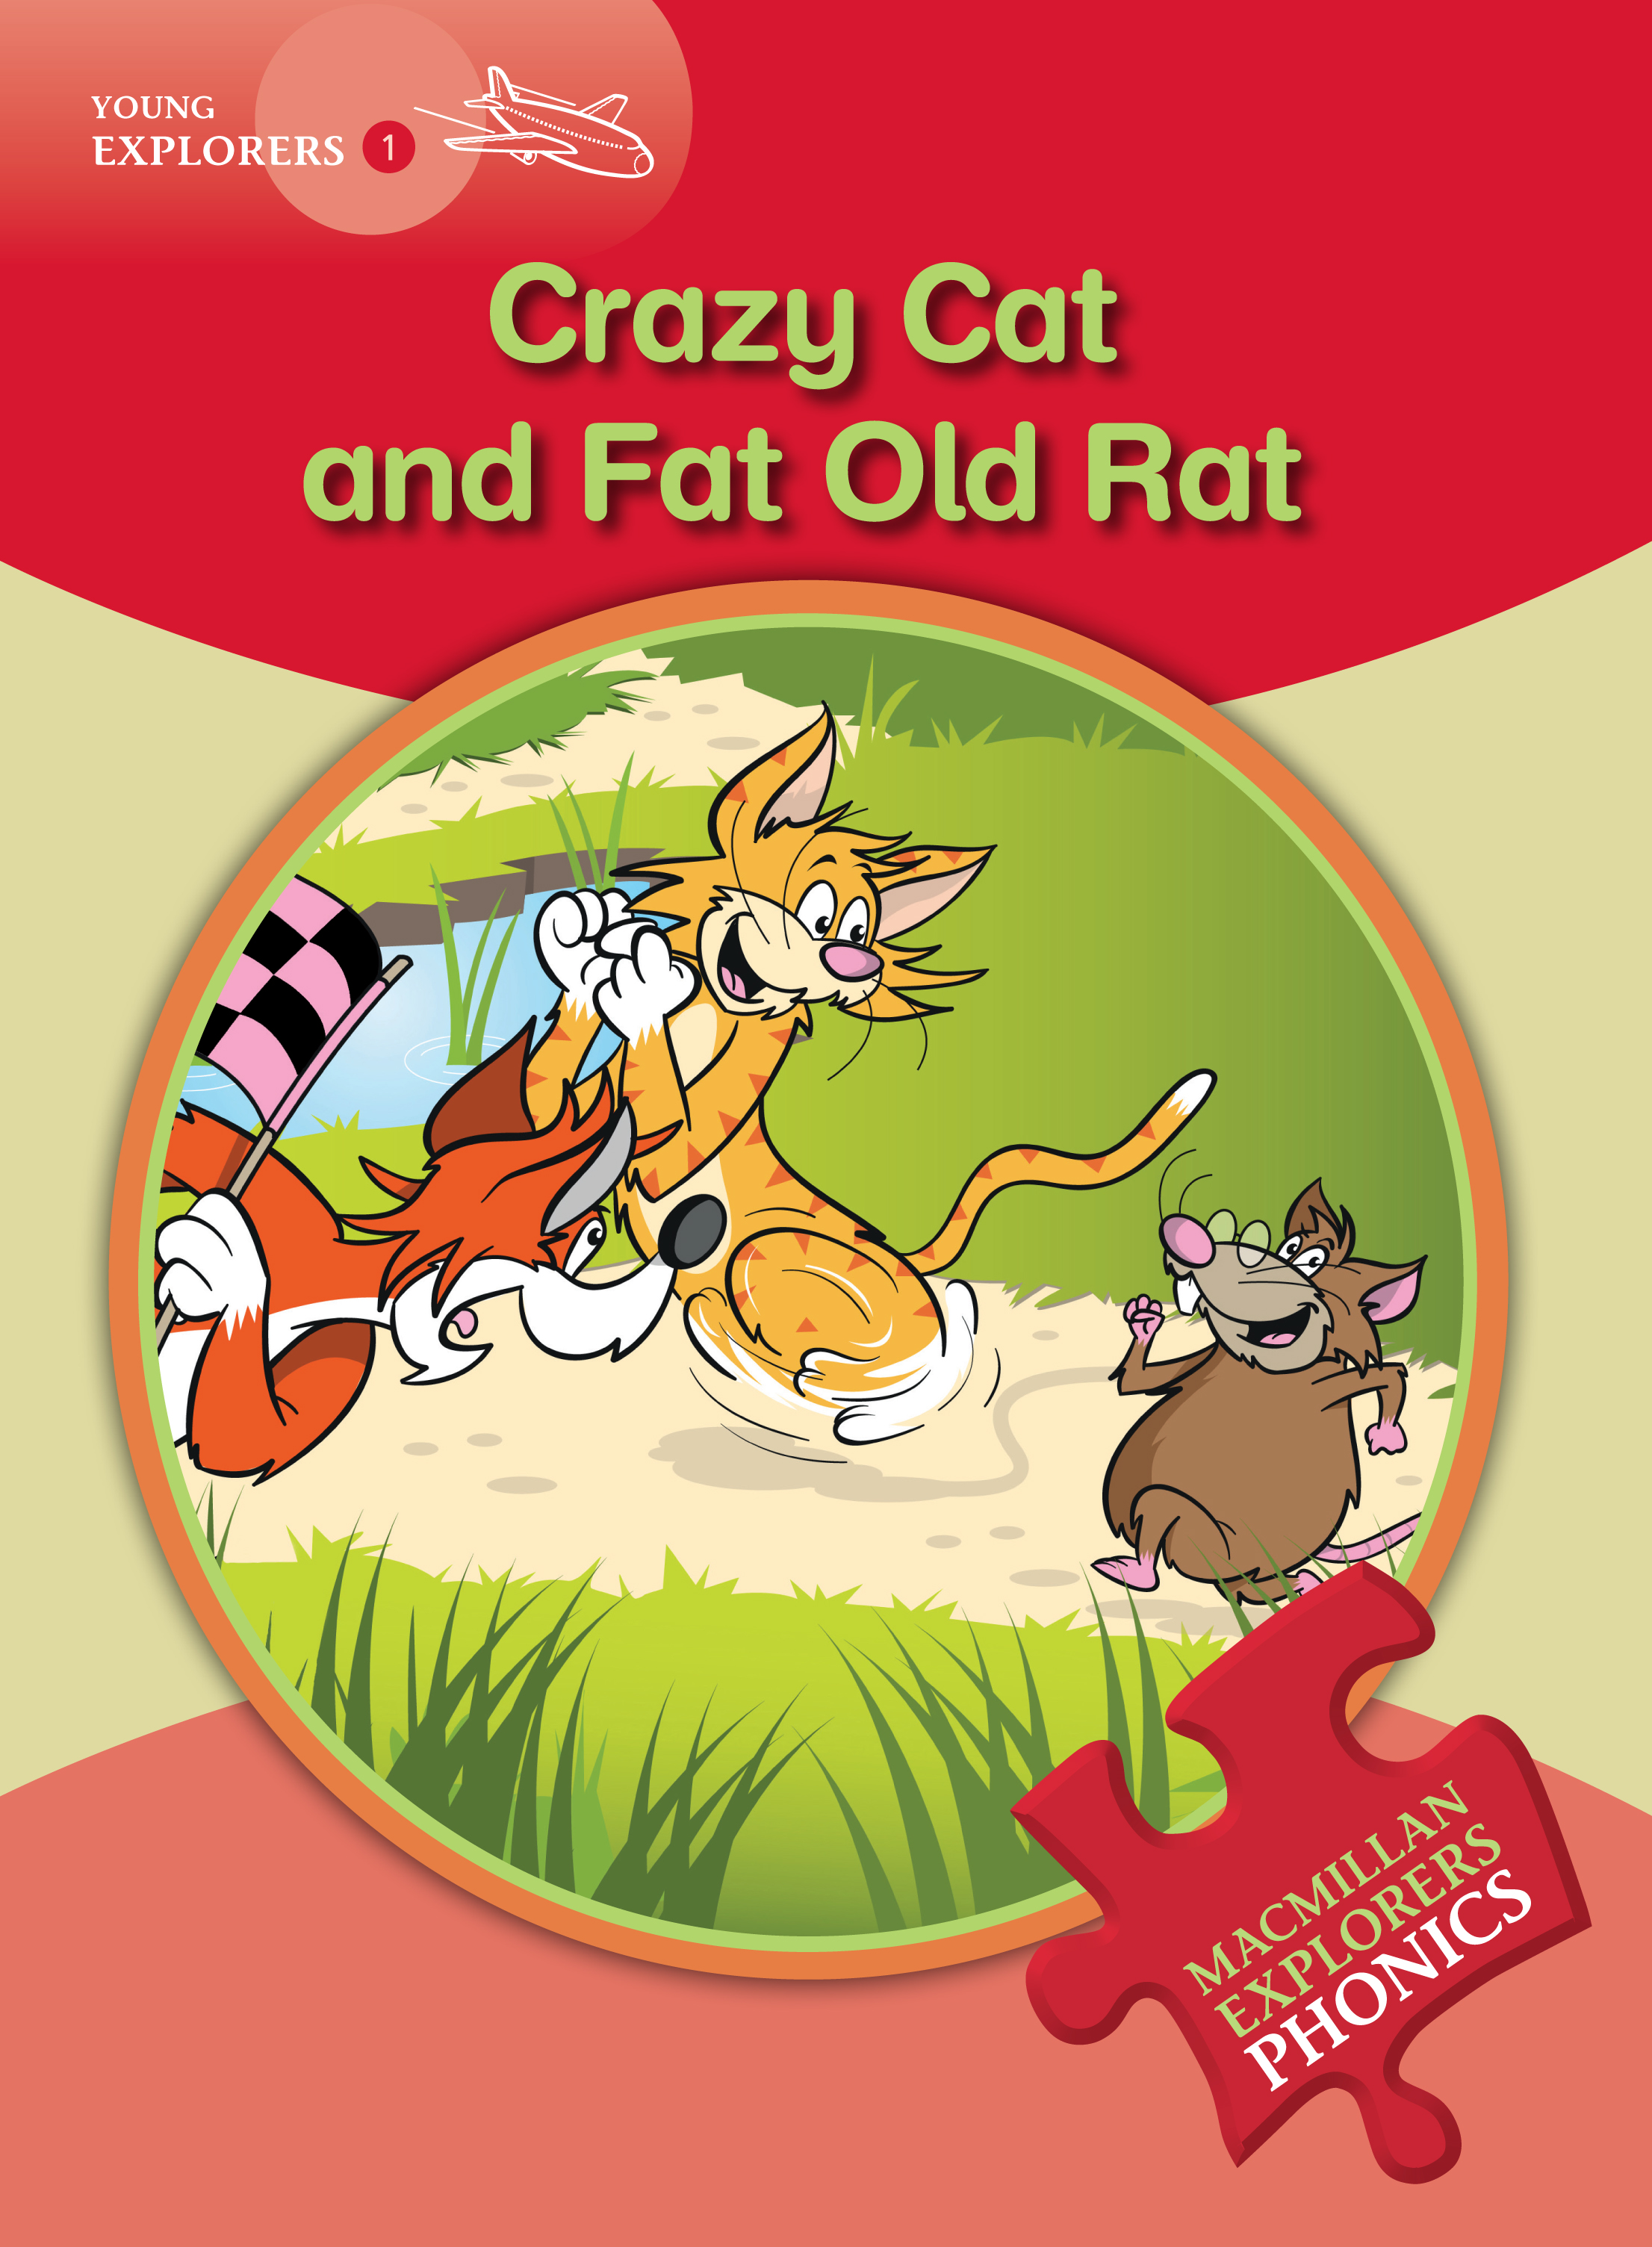 Young Explorers 1: Crazy Cat and Fat Old Rat